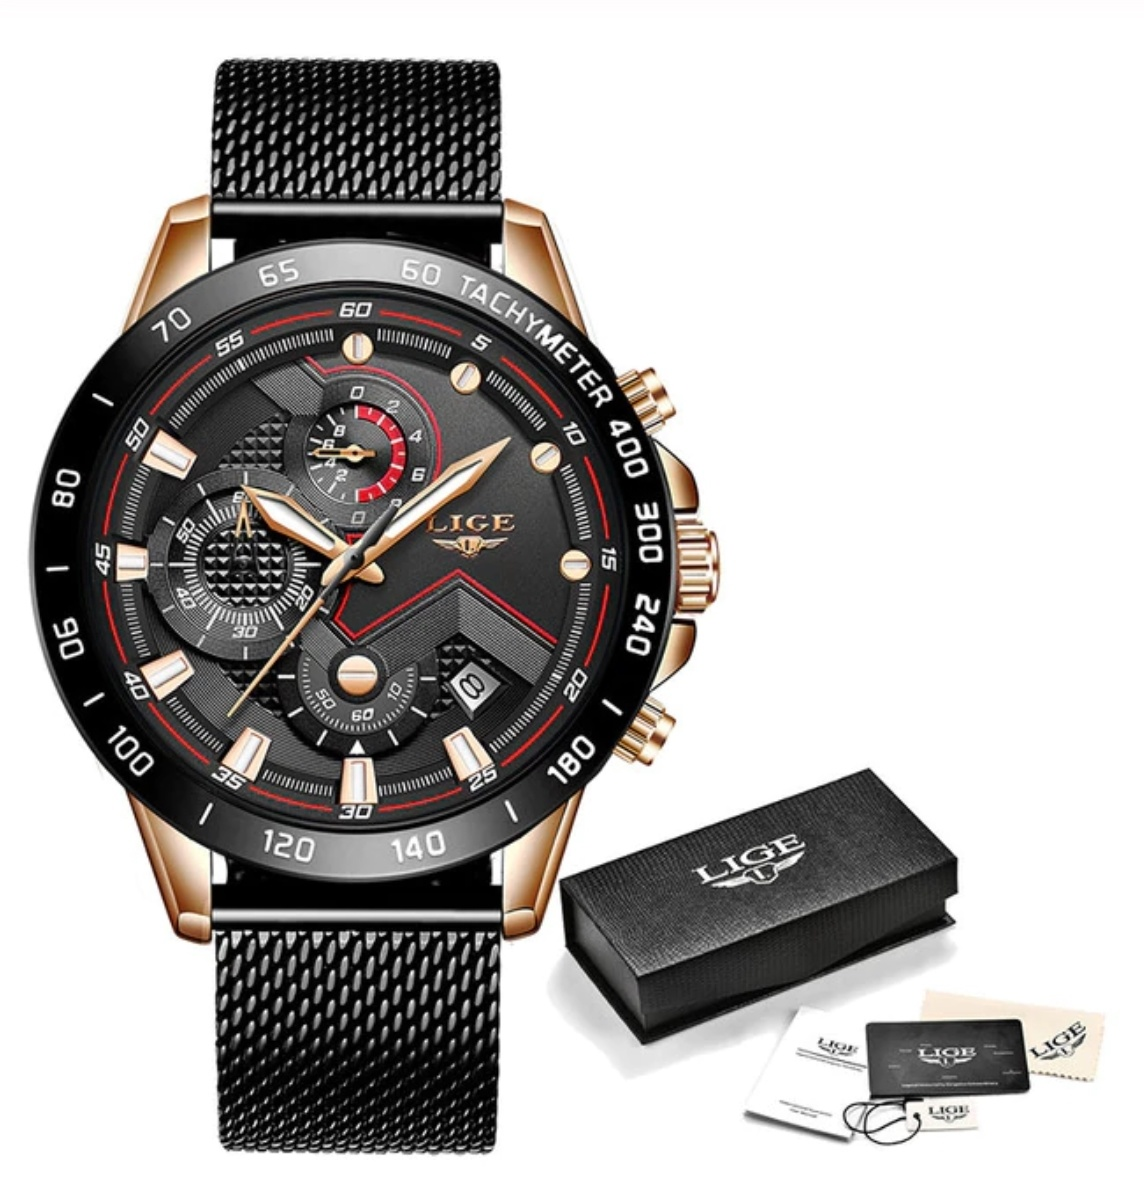 Quartz Watch - Anologue Luxury Movement for Men - Stainless Steel - Black-Gold